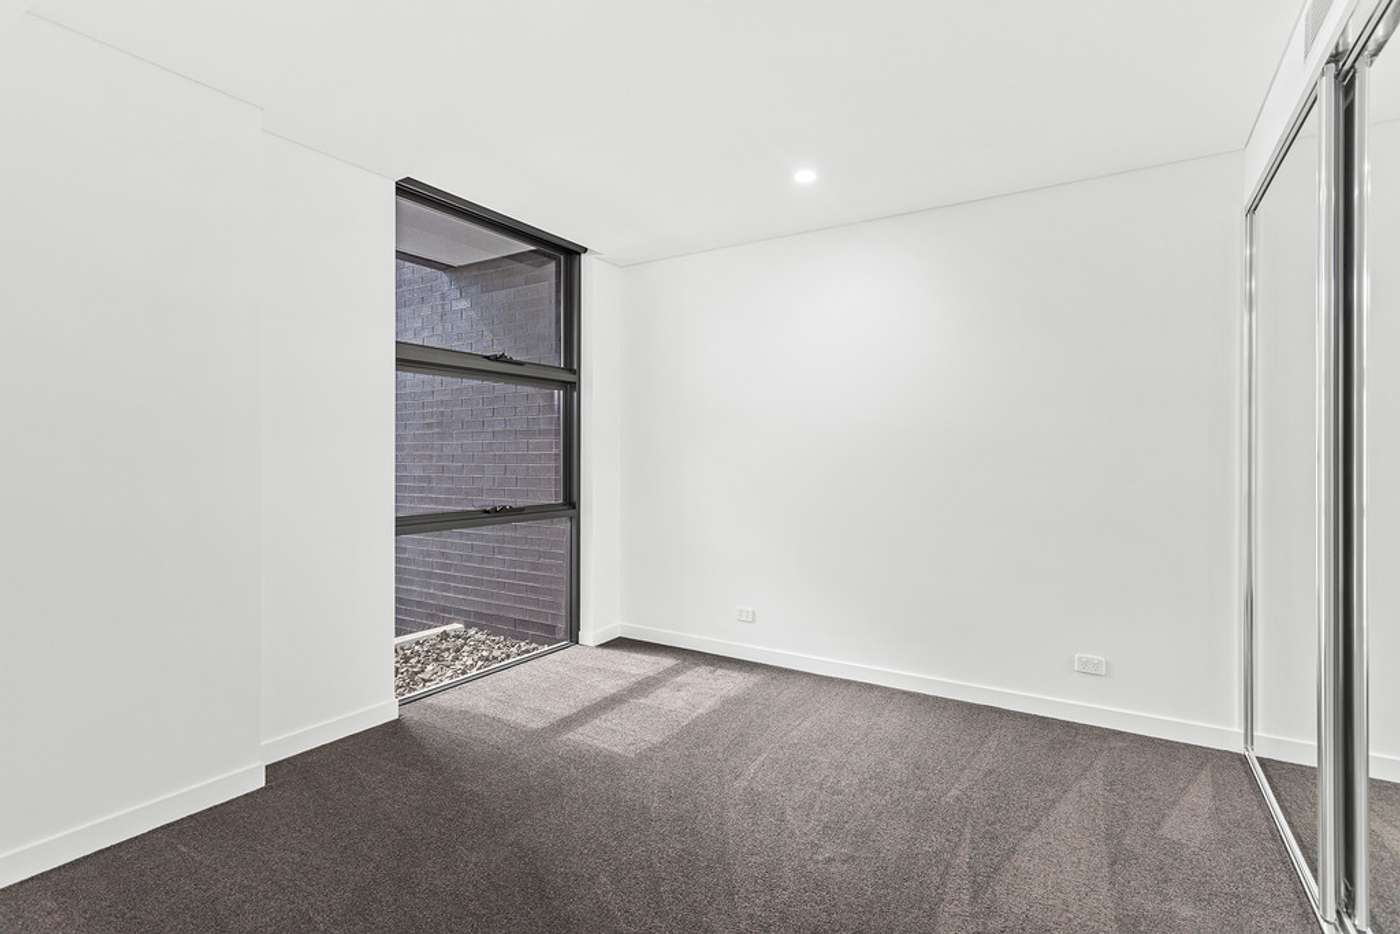 Sixth view of Homely unit listing, 201/14 Beatson Street, Wollongong NSW 2500